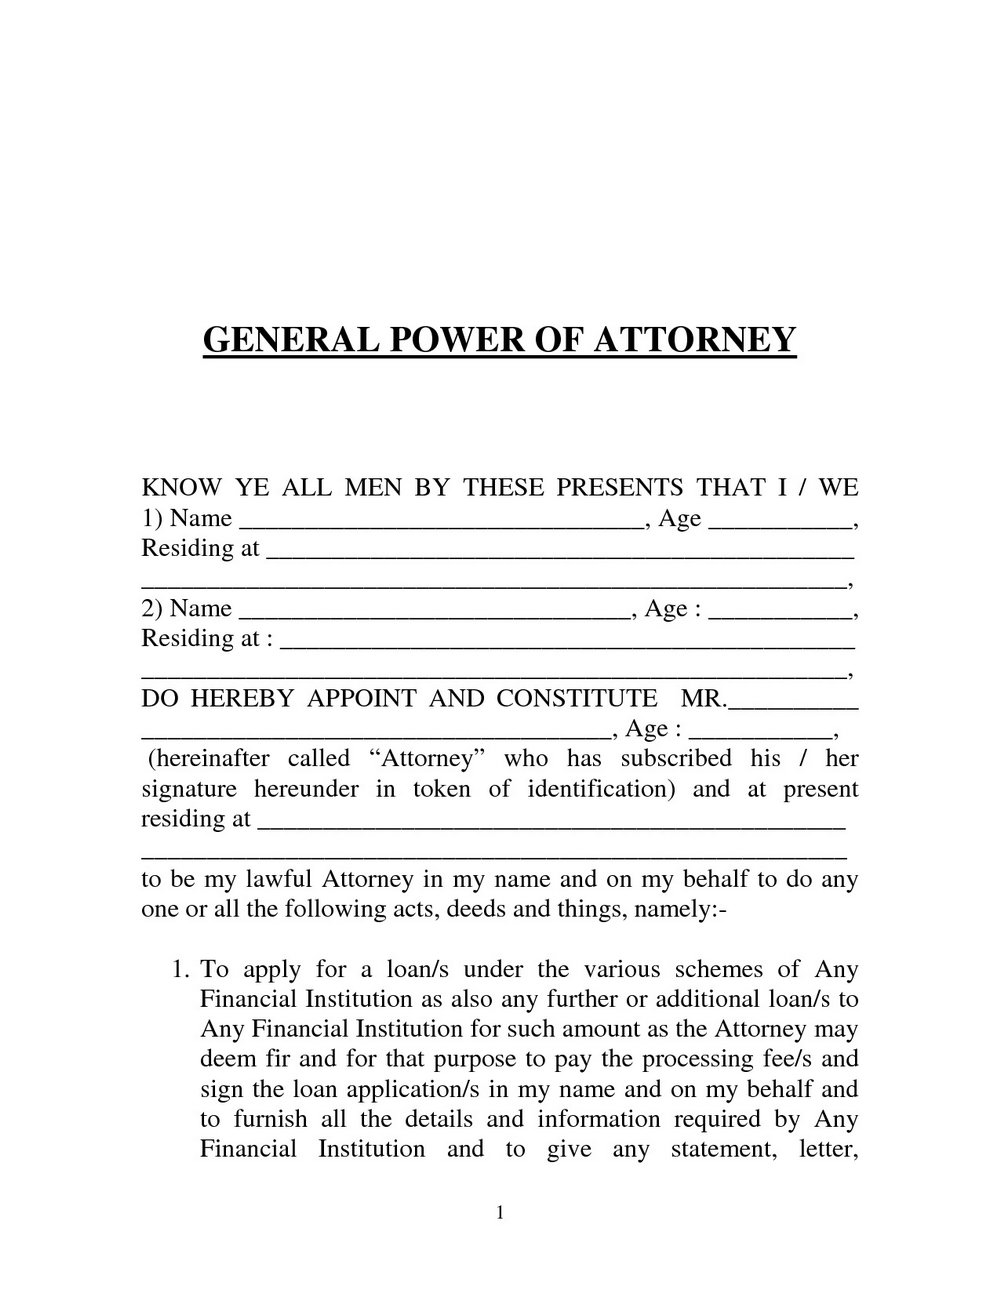 General Power Of Attorney Template South Africa